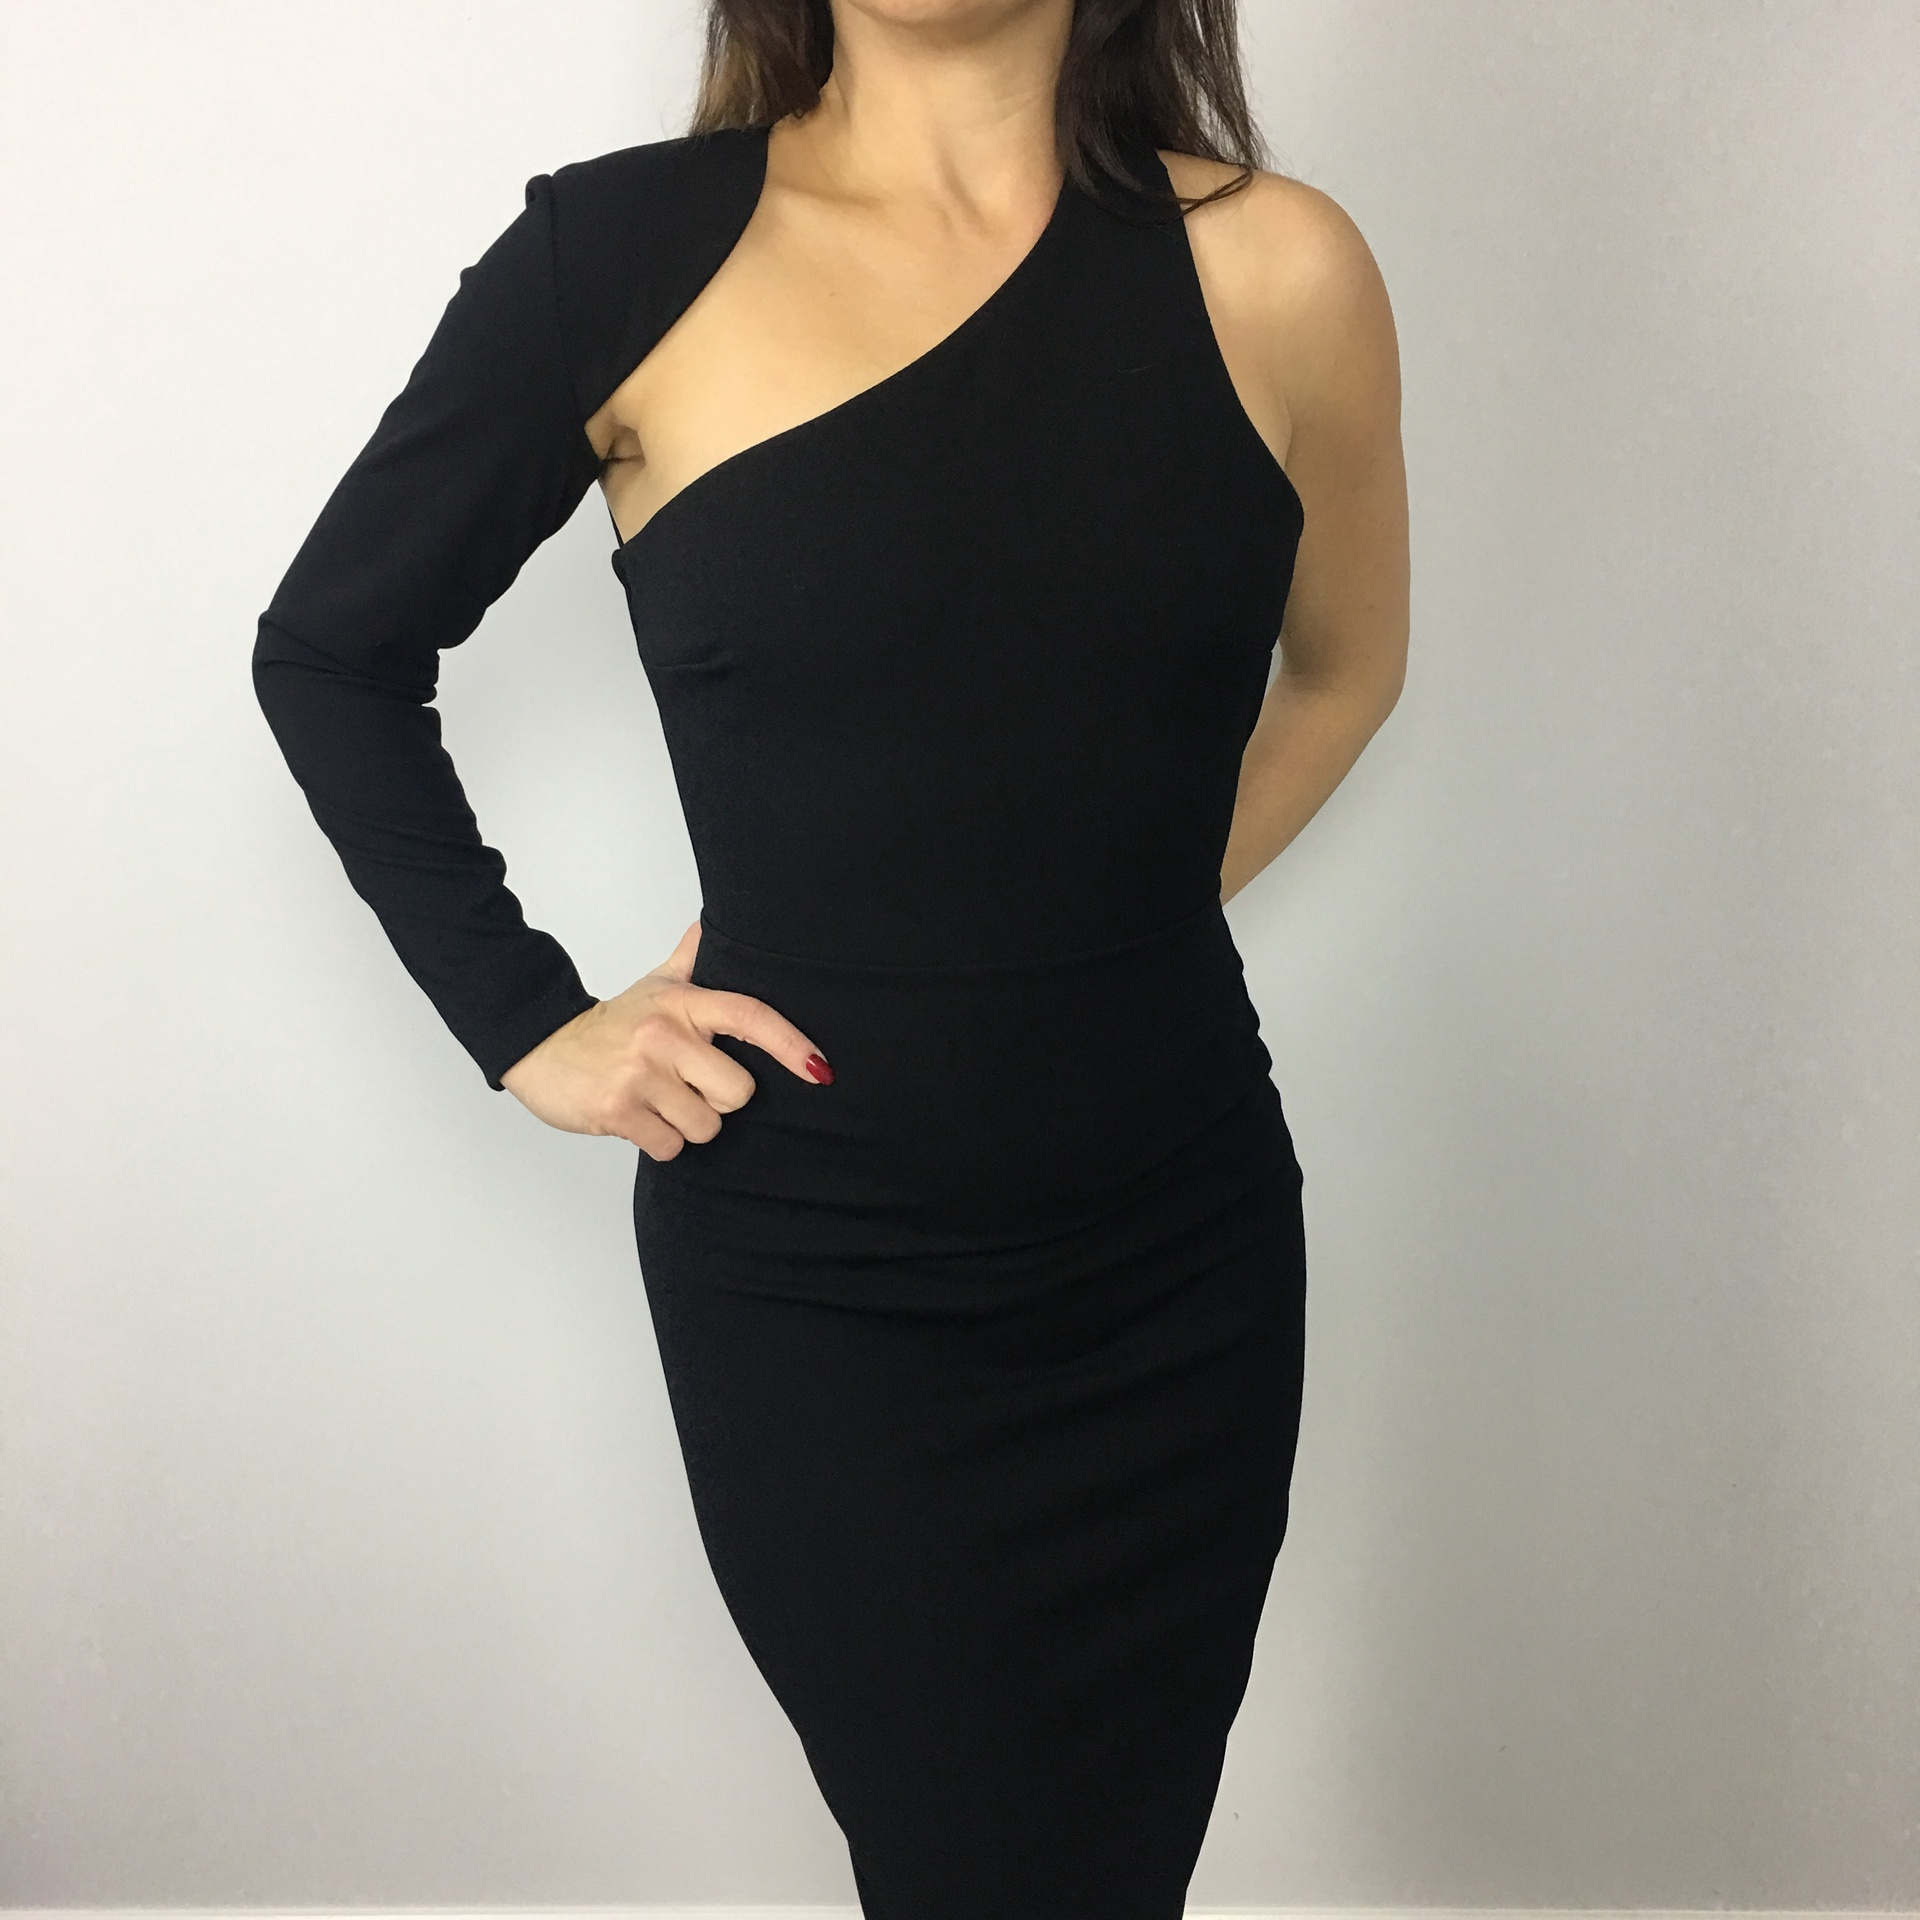 531de943e57 Ad Lib Asymmetrical Dress